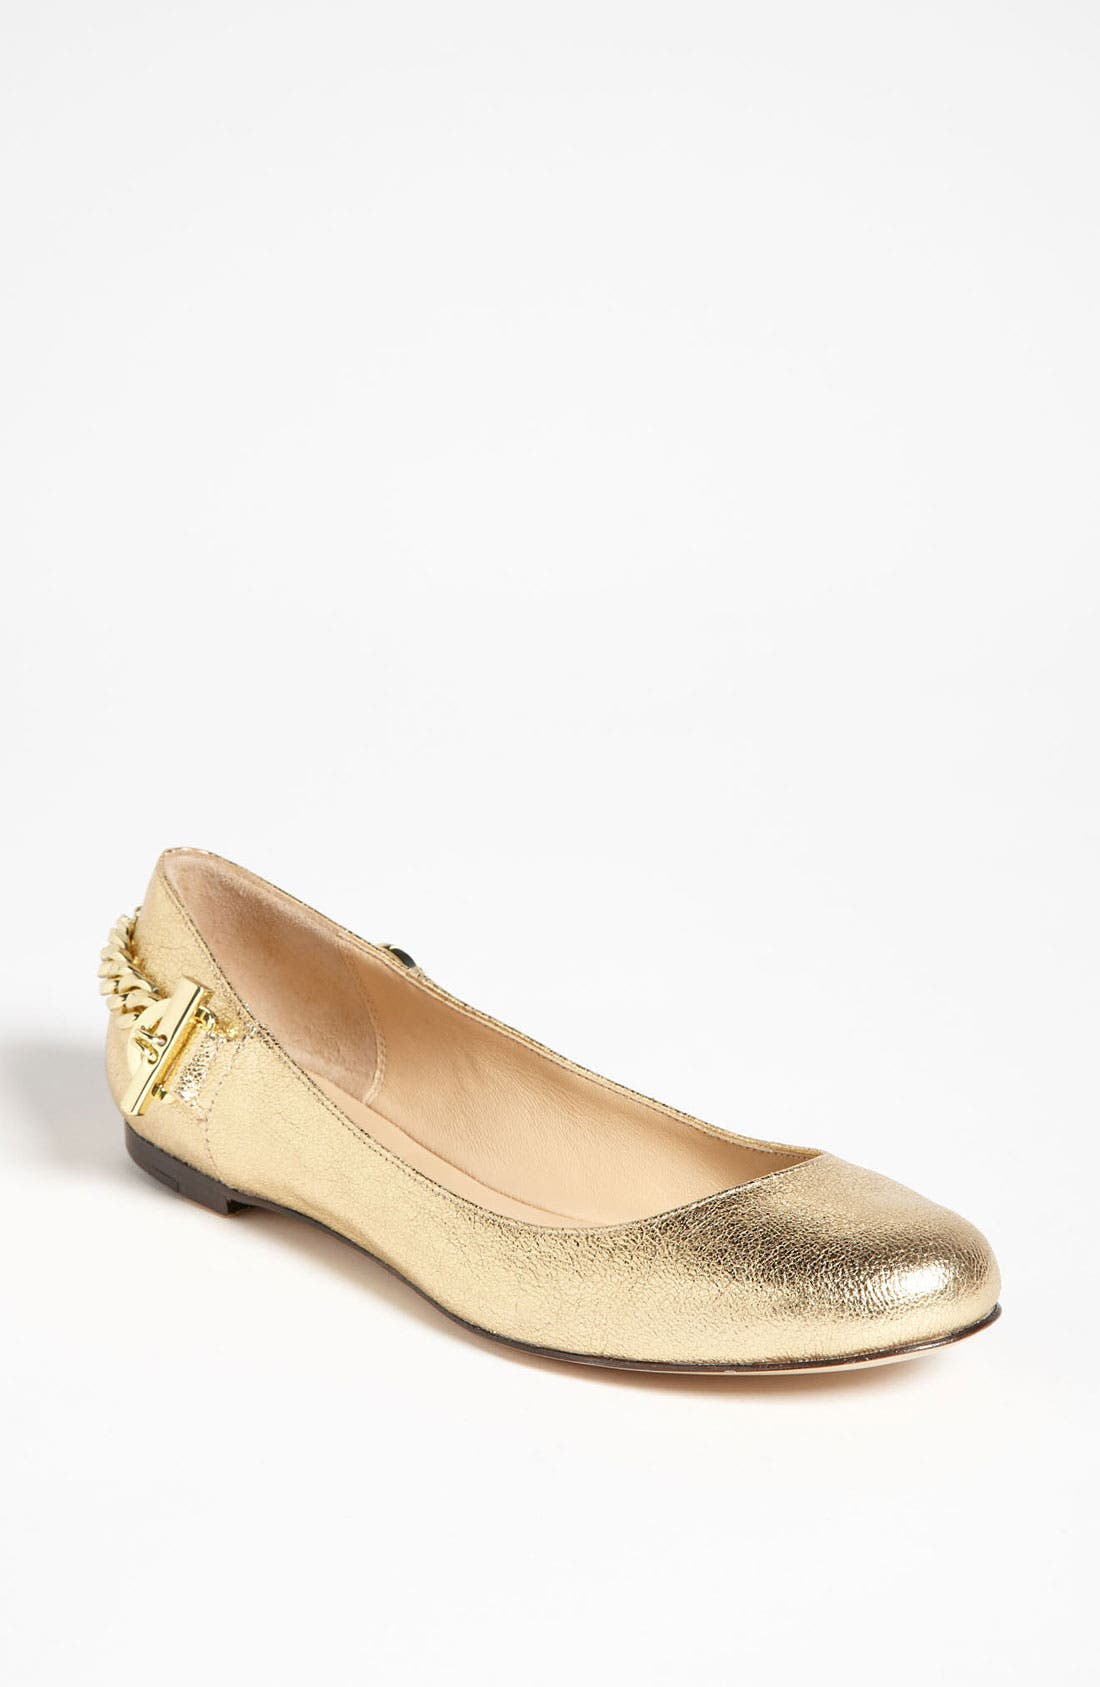 Alternate Image 1 Selected - Rachel Zoe 'Laura' Flat